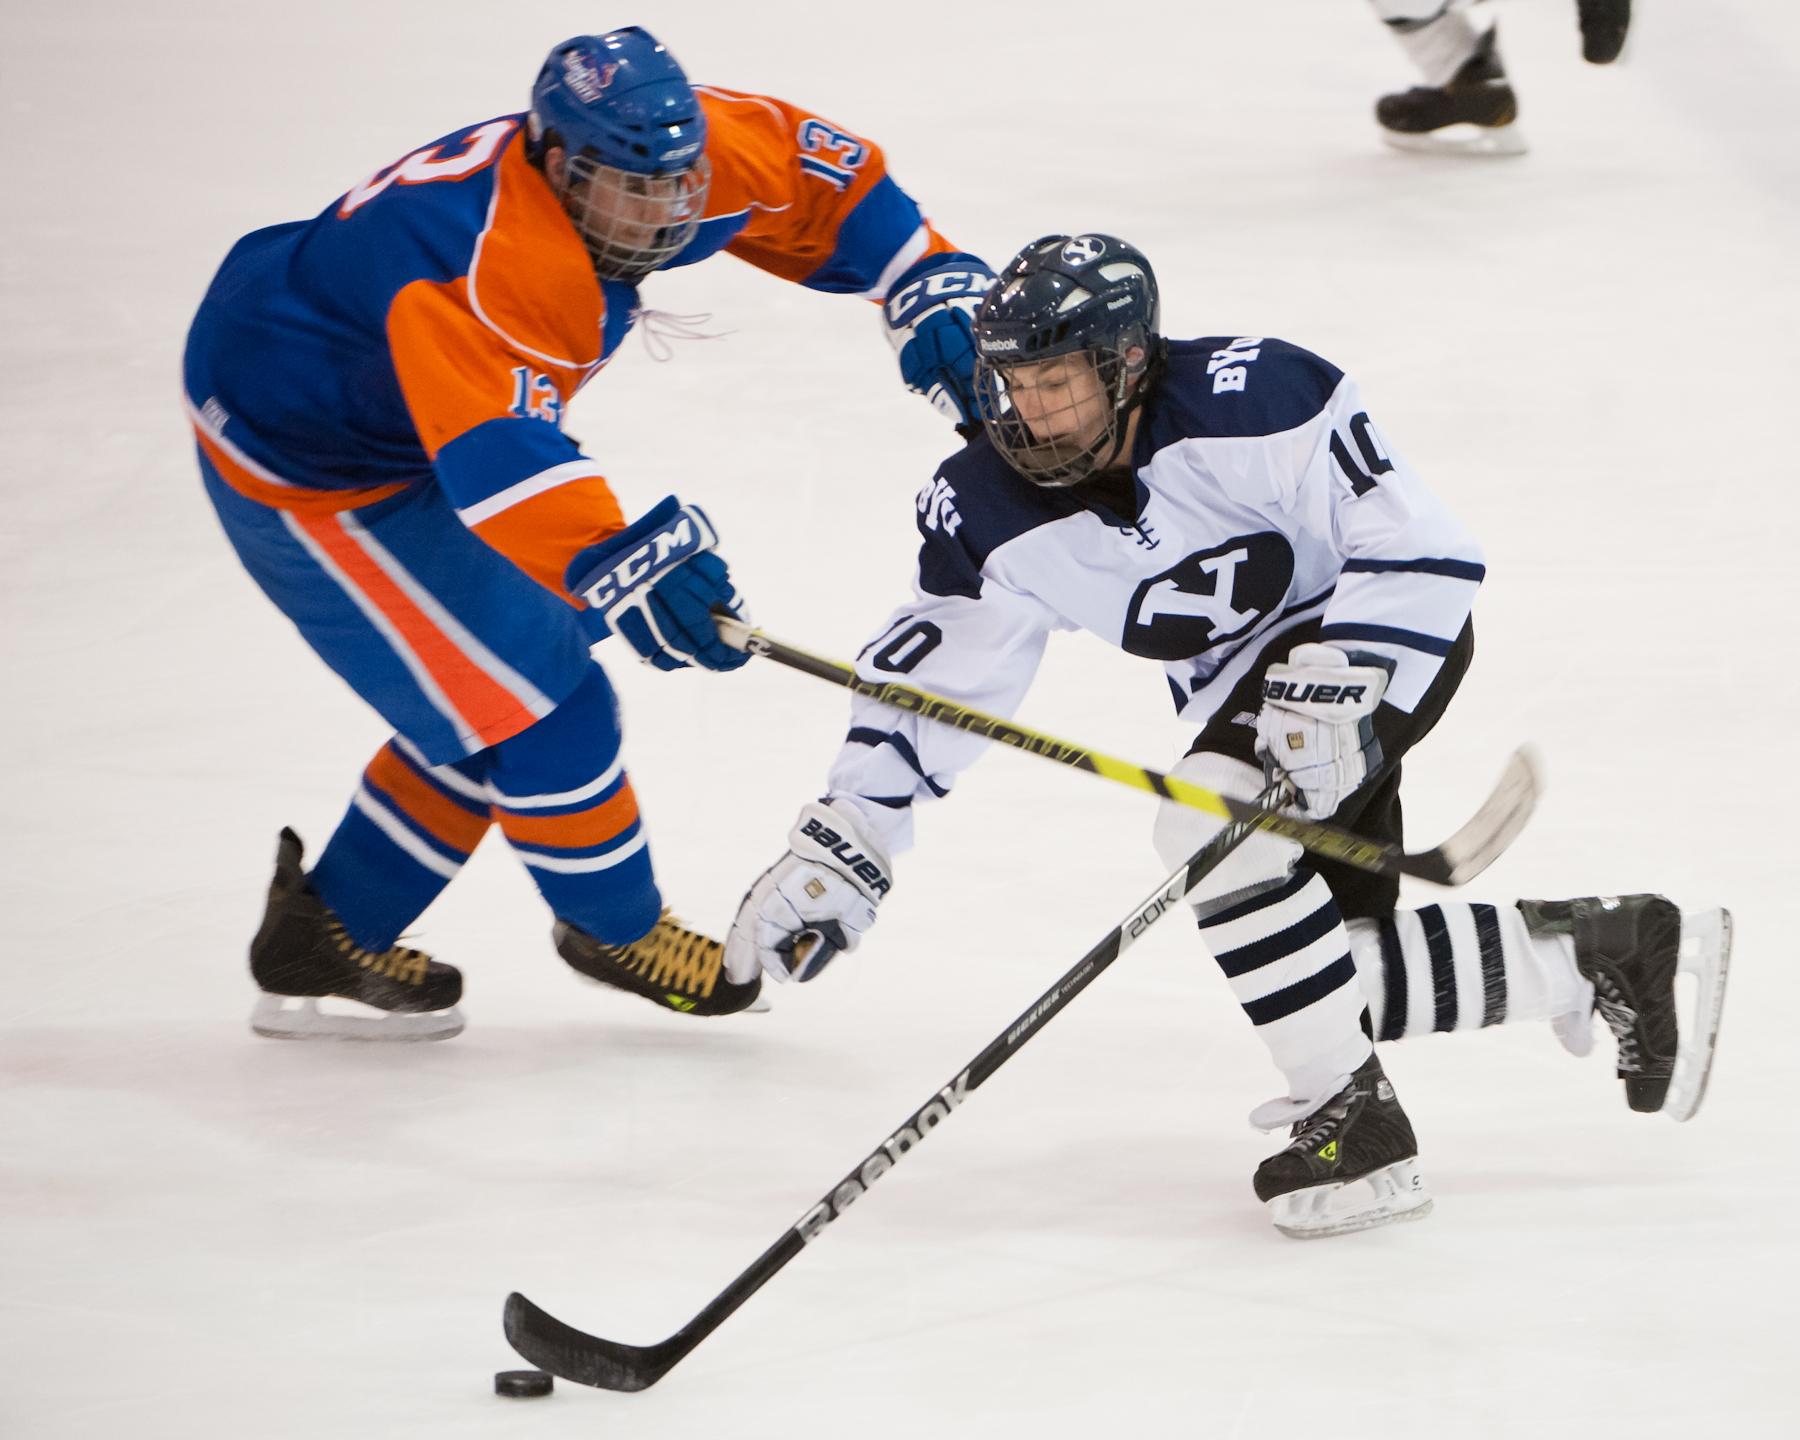 BYU hockey trounces decimated Boise State team - The Daily Universe 7531fe96ff7